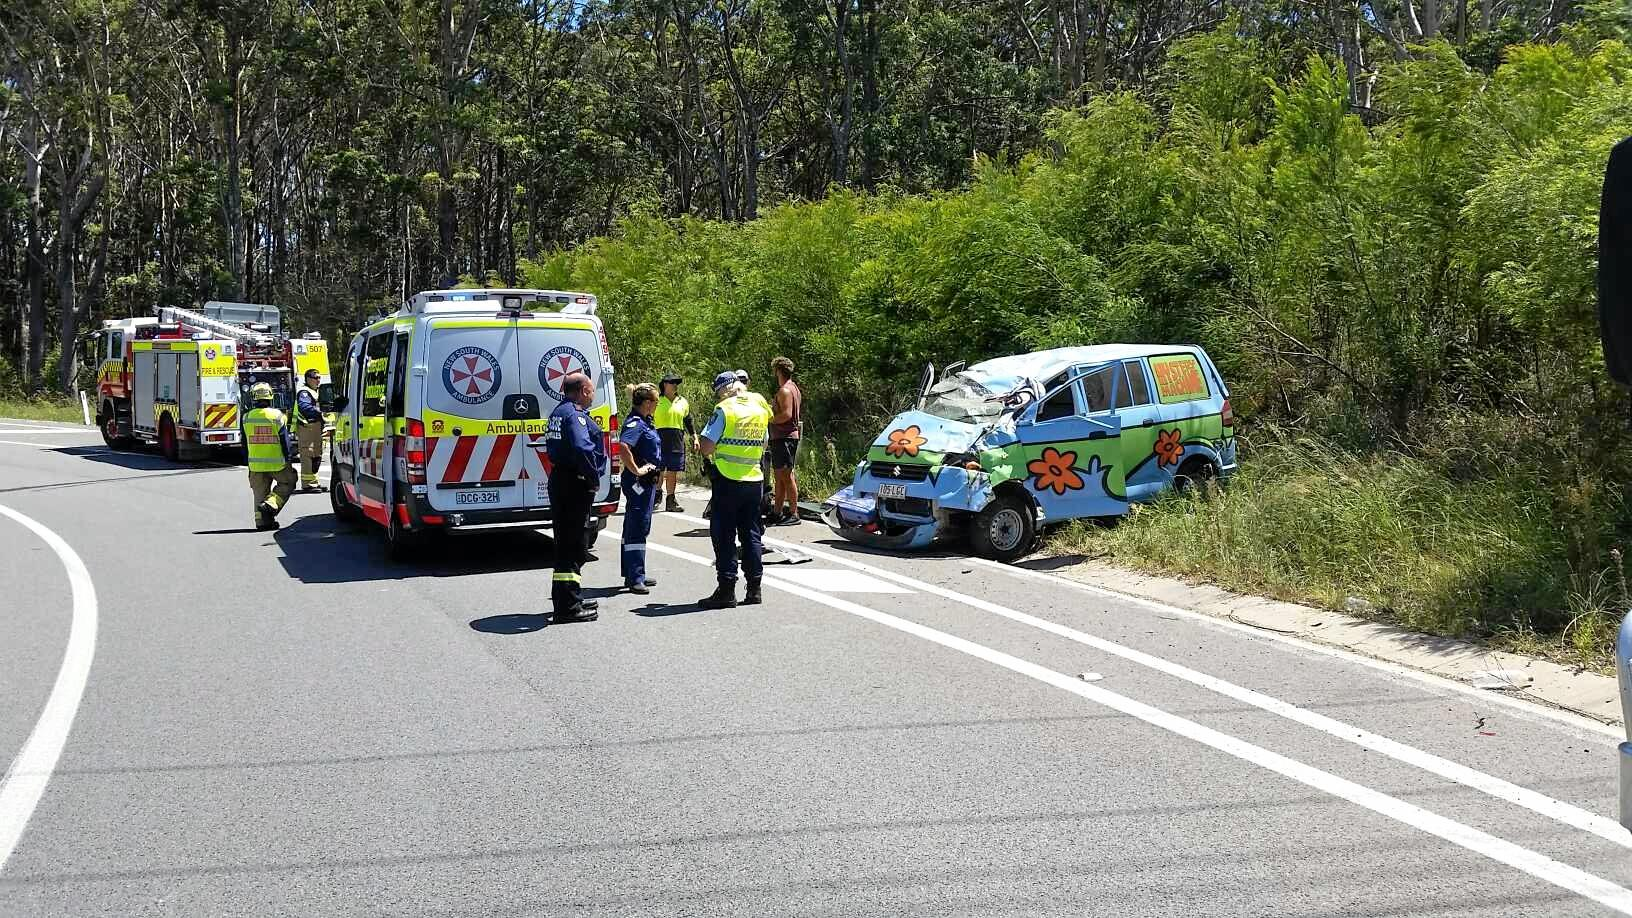 The driver, aged in his late teens, was taken to the Coffs Harbour Health Campus after sustaining a cut.